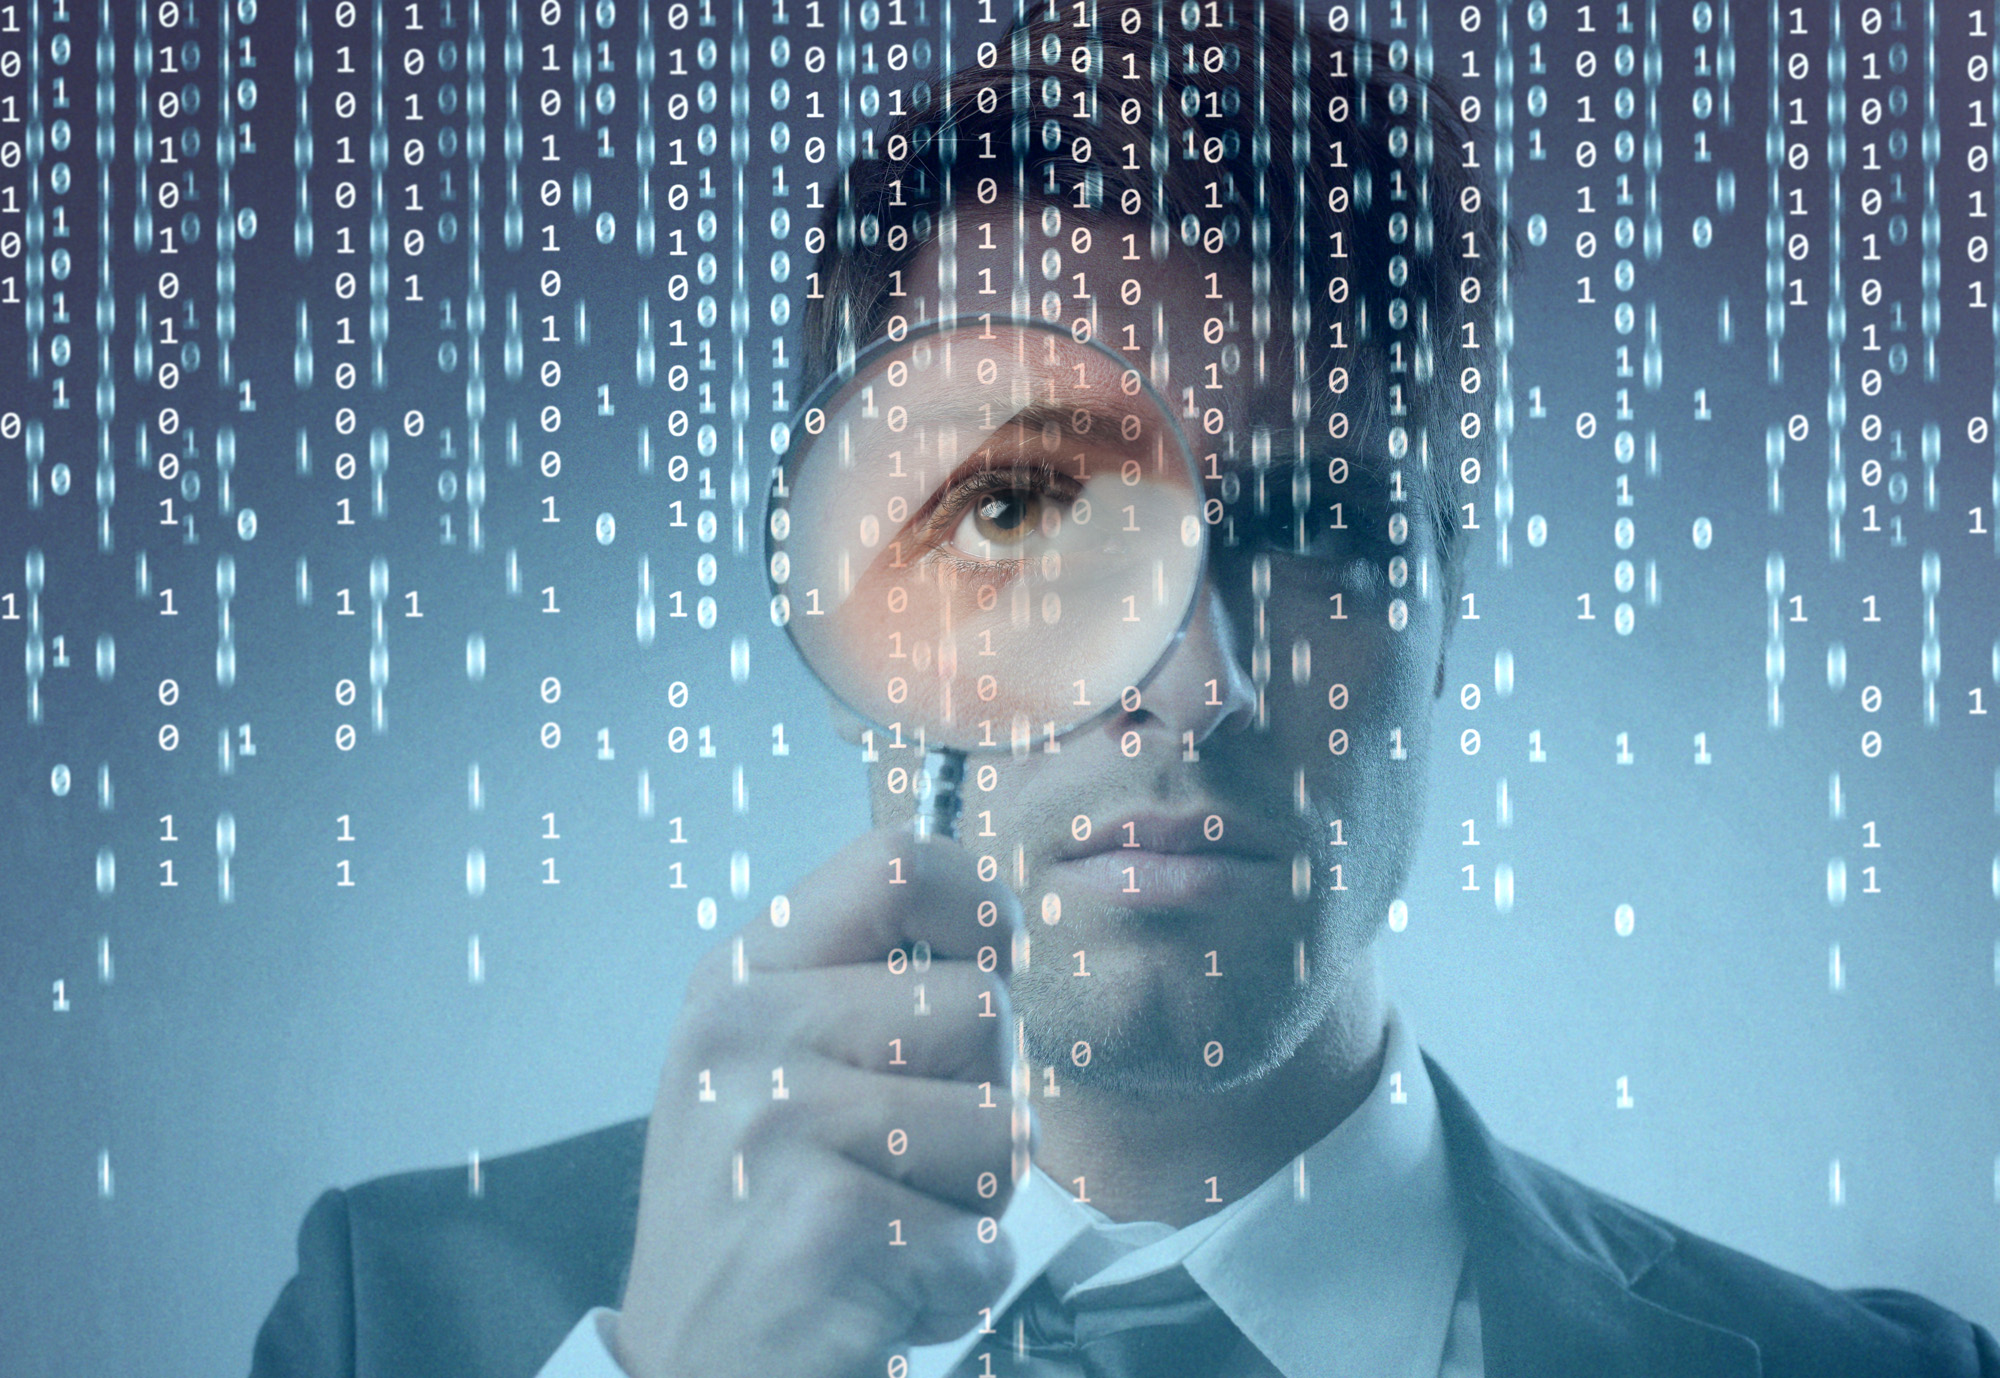 ARL and other government organizations are looking into ways to realize the benefits of open source software, following a call from the U.S. Chief Information Officer for a greater release of custom code created by federal agencies. (Image courtesy of shutterstock and ARL)